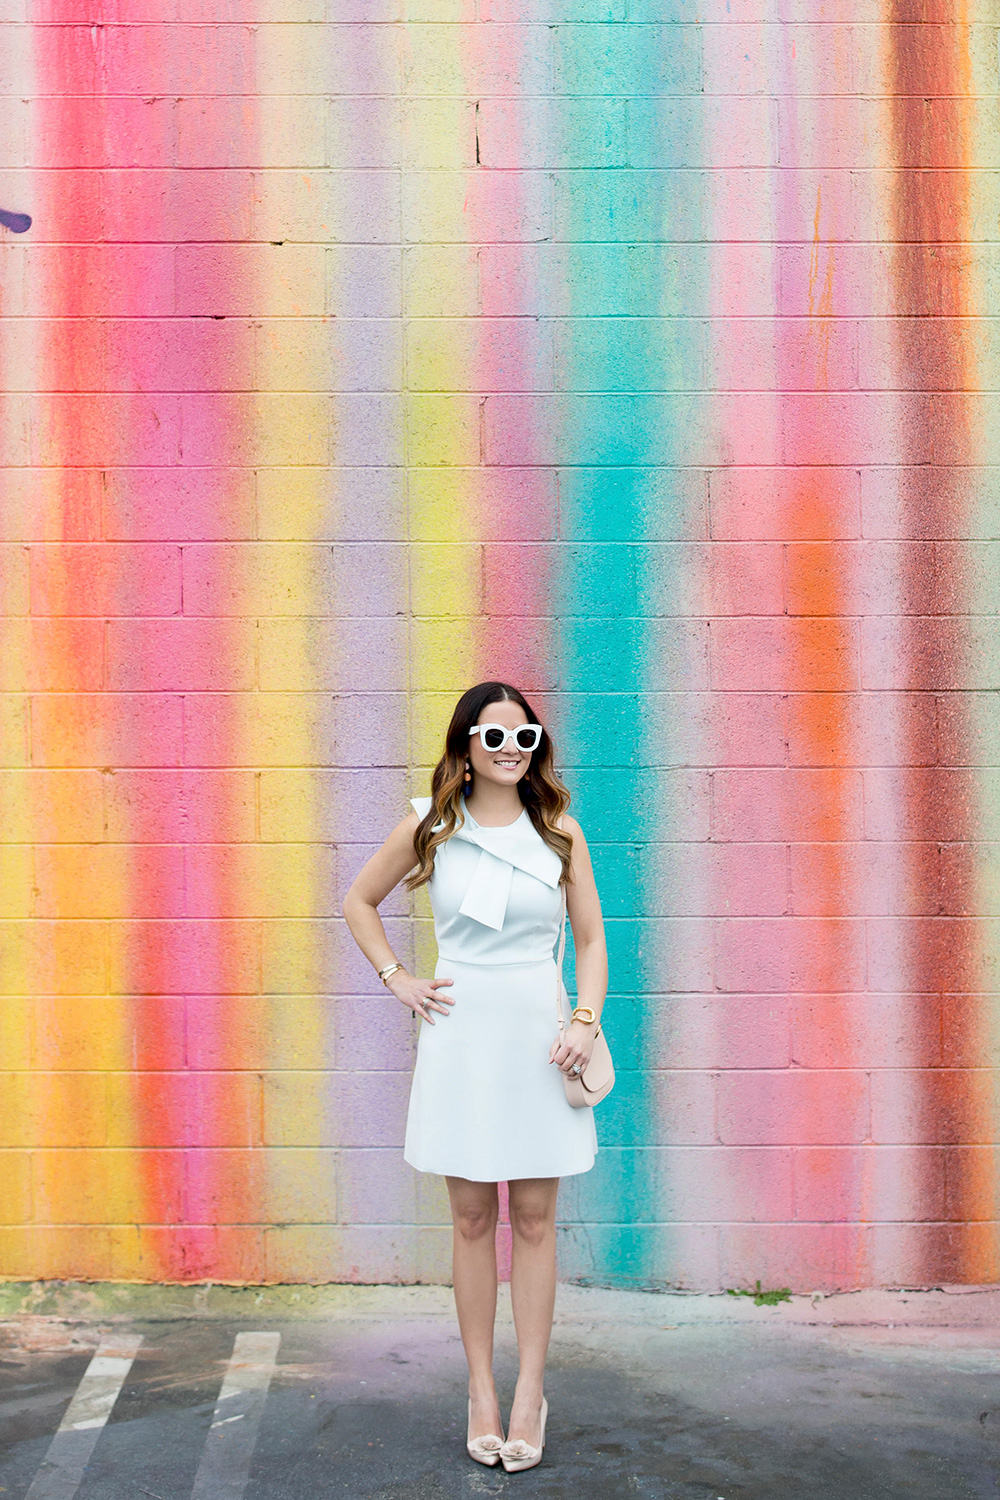 Colorful Drip Paint Wall Los Angeles